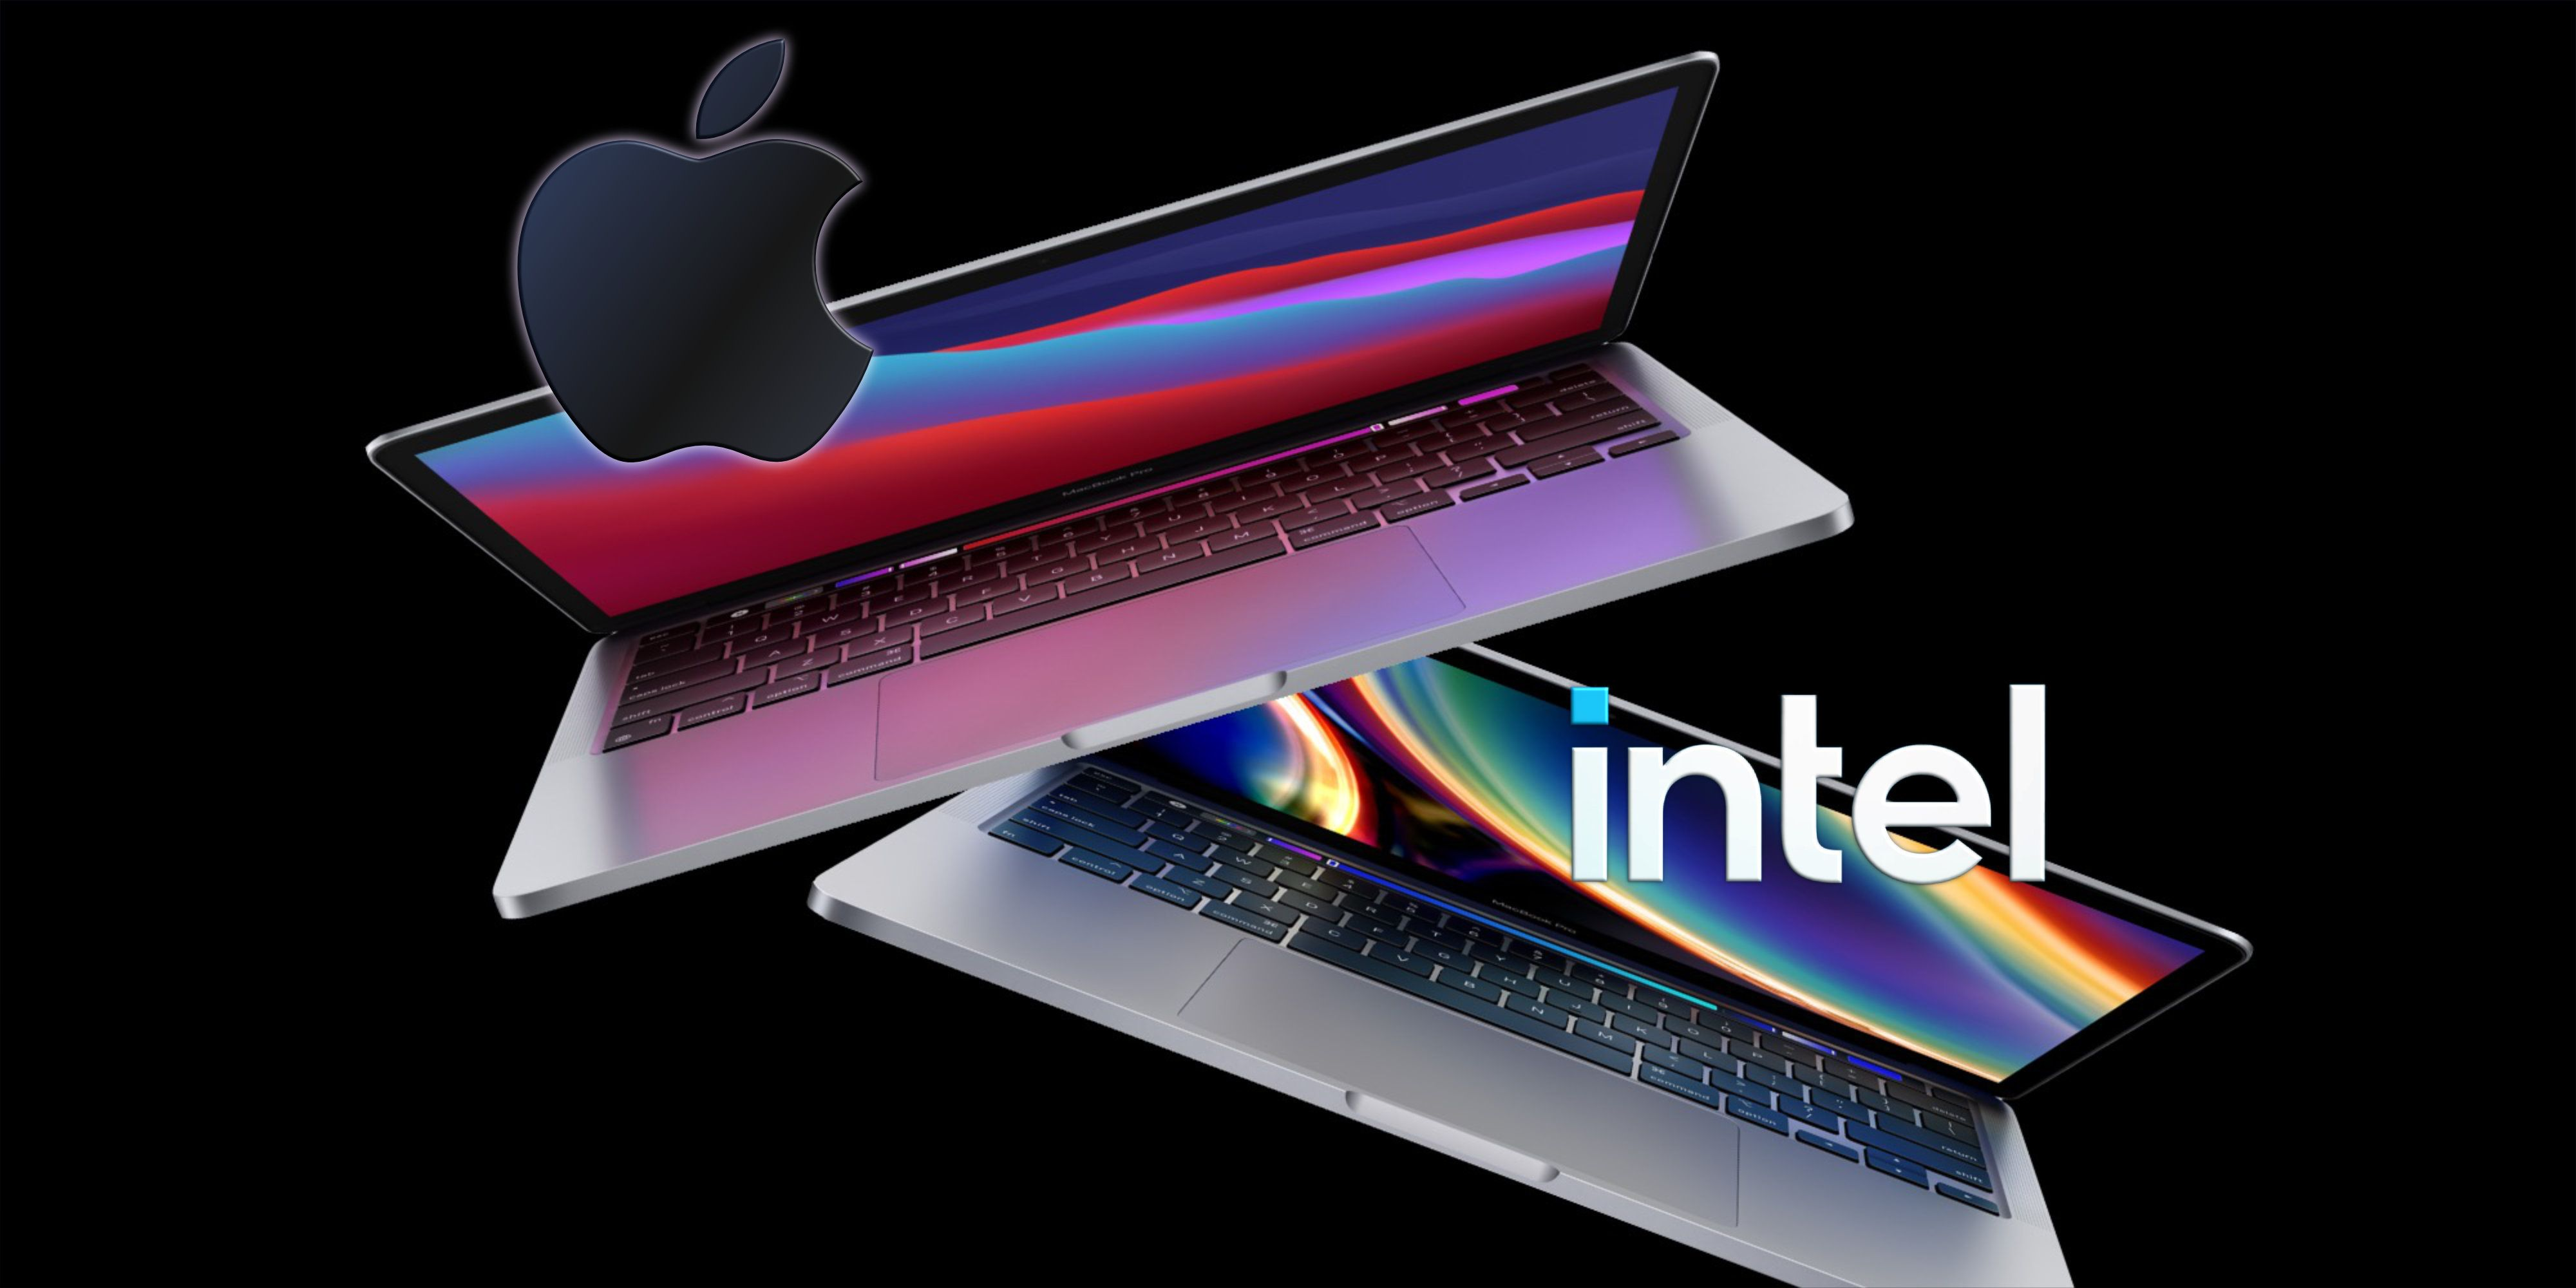 13 inch Macbook M1 vs Intel